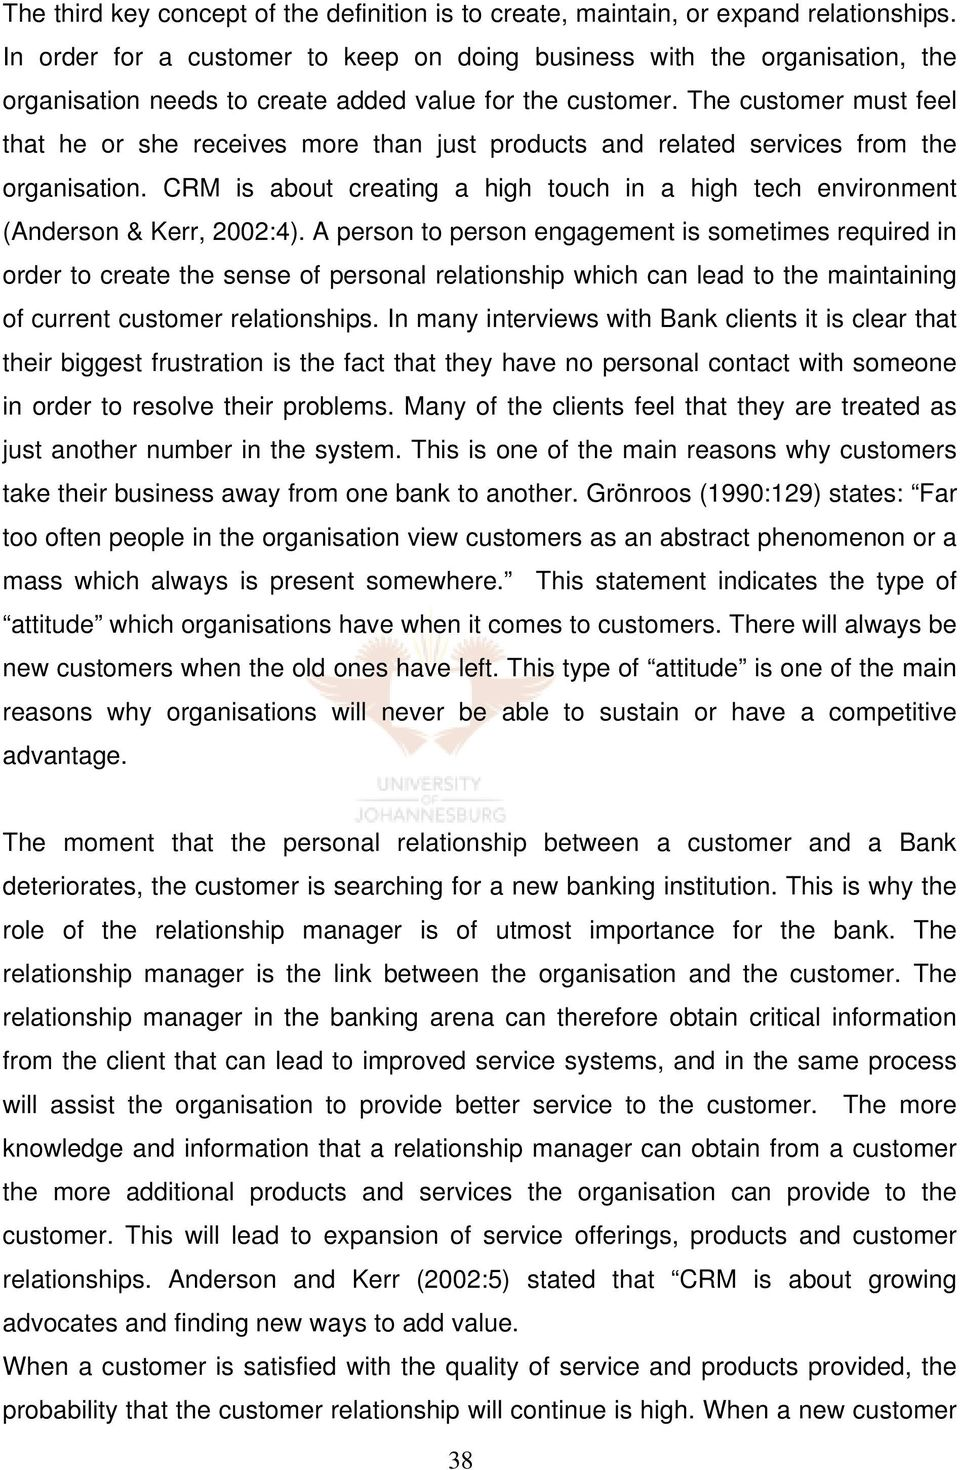 The customer must feel that he or she receives more than just products and related services from the organisation.